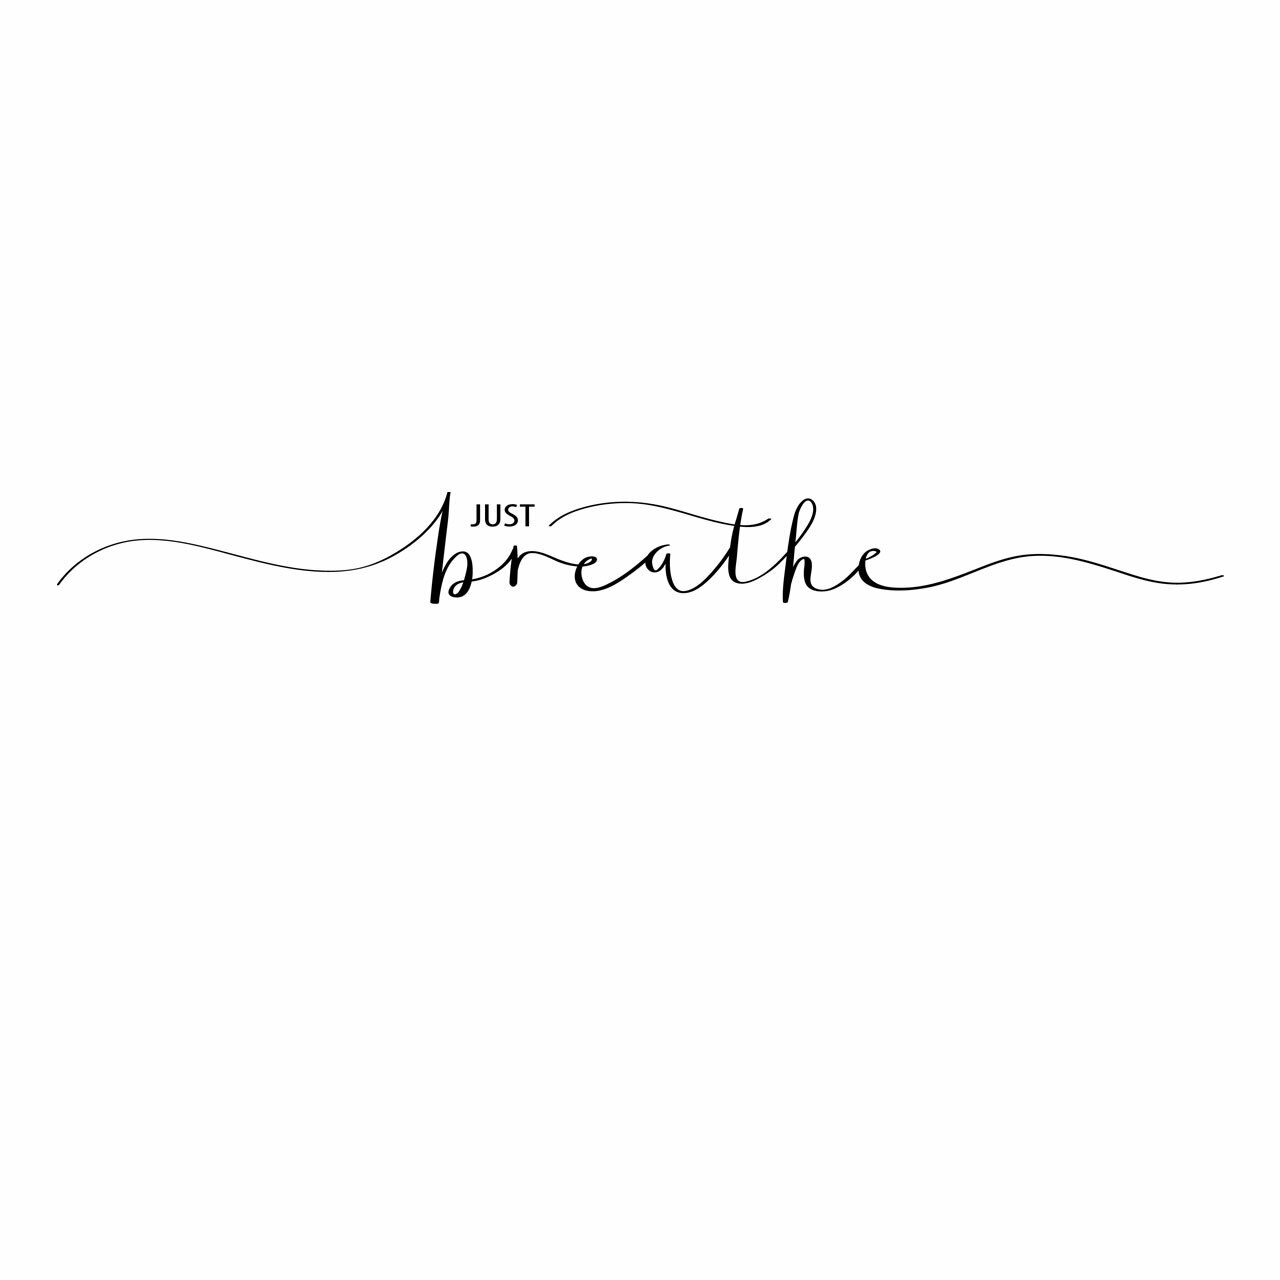 """""""JUST breathe"""" written in black in mixed fonts on a white background"""